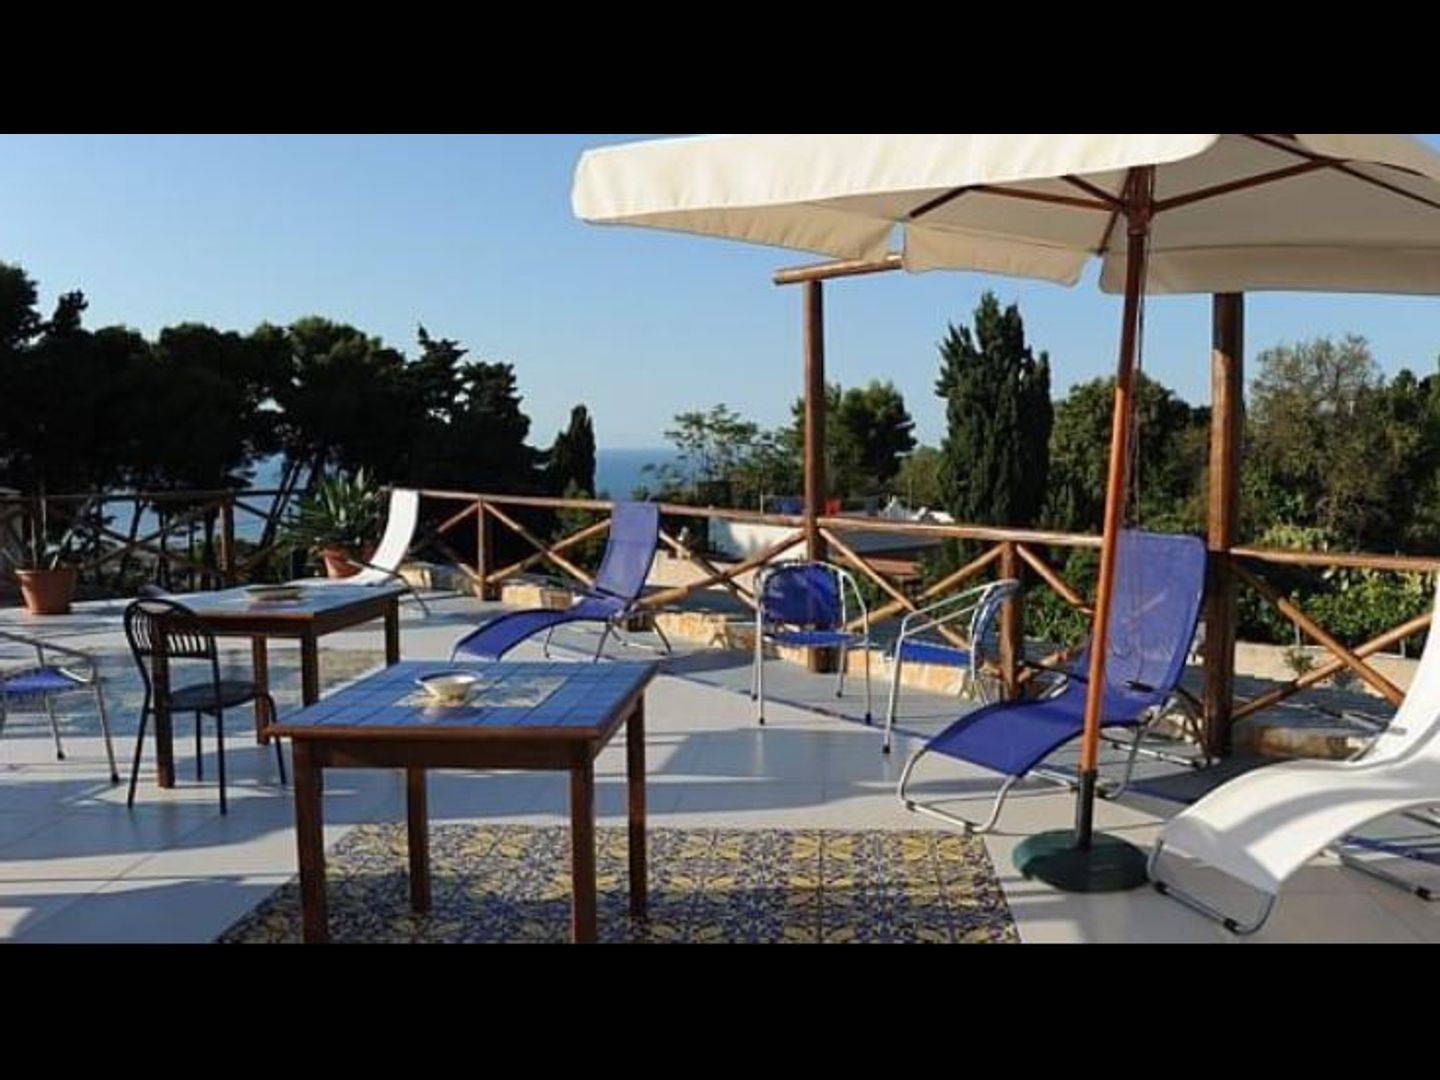 A group of lawn chairs sitting on top of a table at B&B Alfrantoio Valderice.